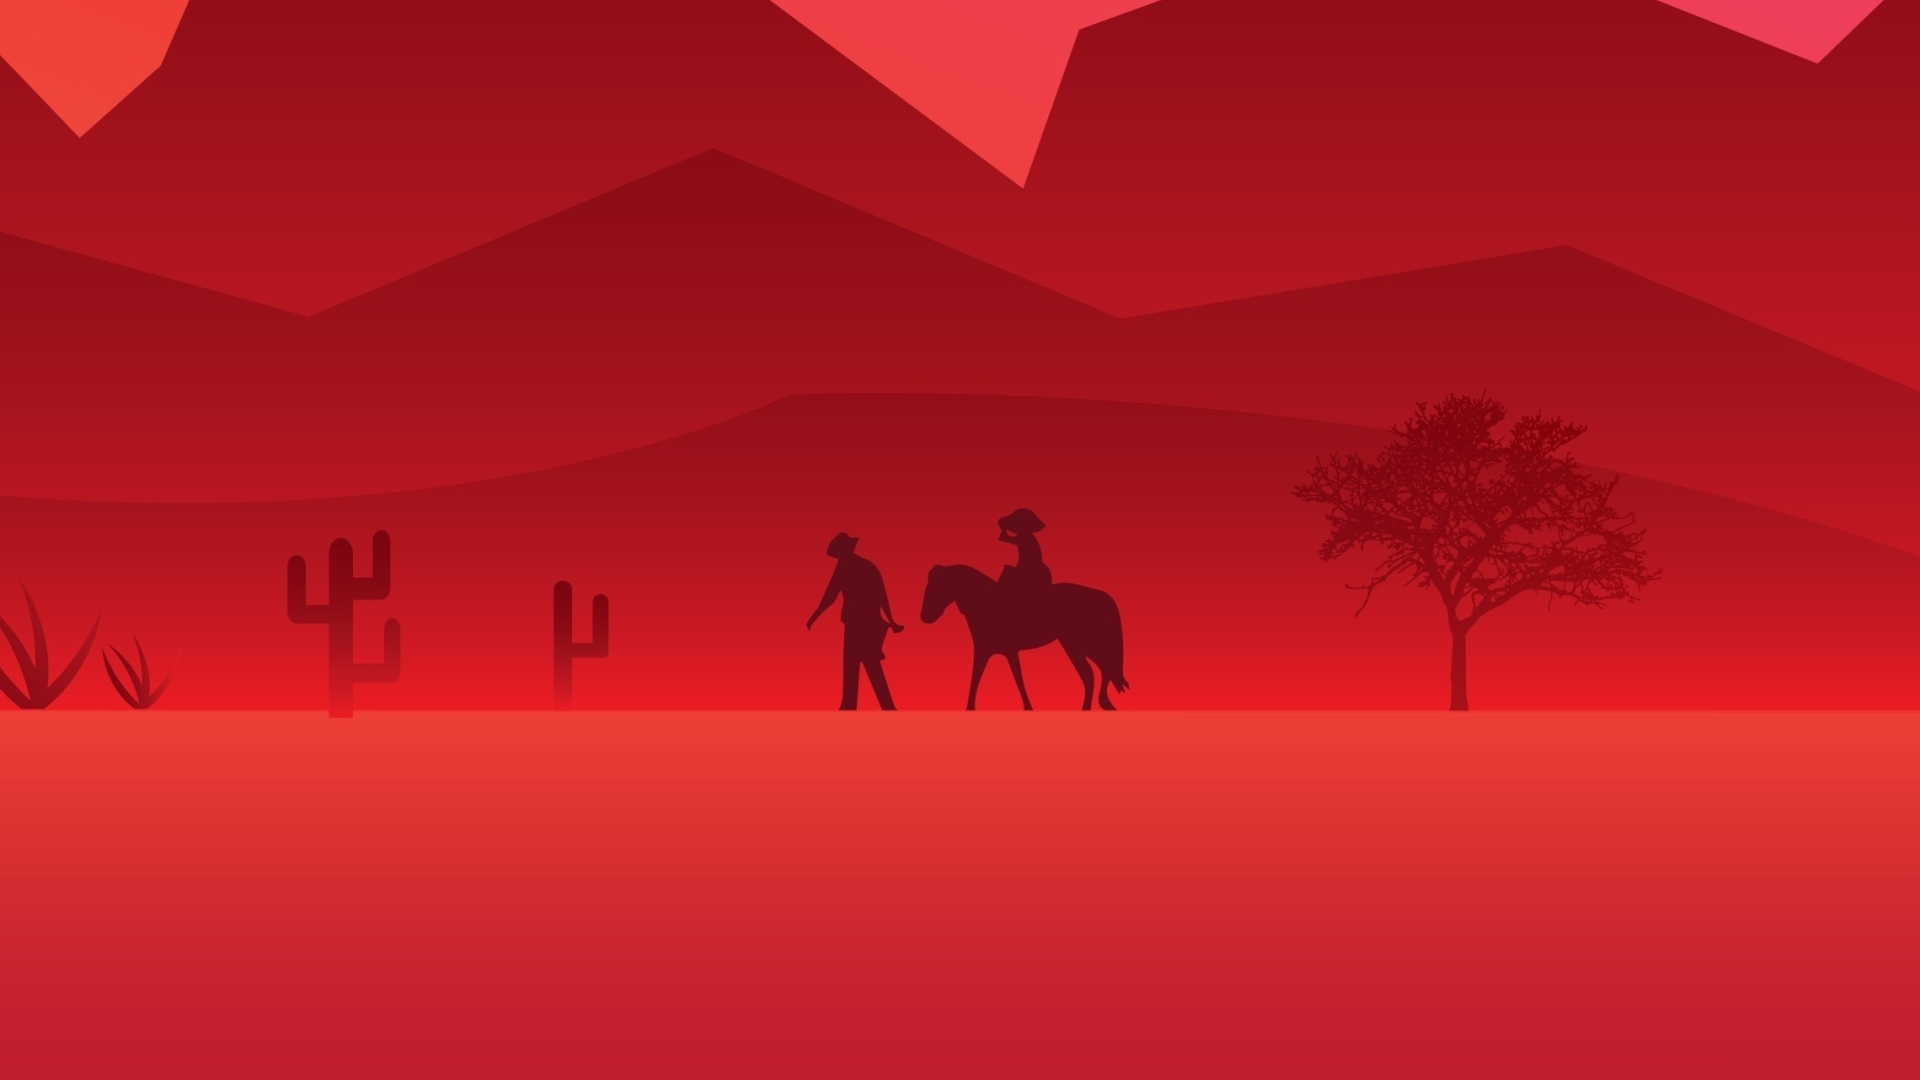 1920x1080 Red Dead Redemption 2 Minimal Game 19 1080p Laptop Full Hd Wallpaper Hd Games 4k Wallpapers Images Photos And Background